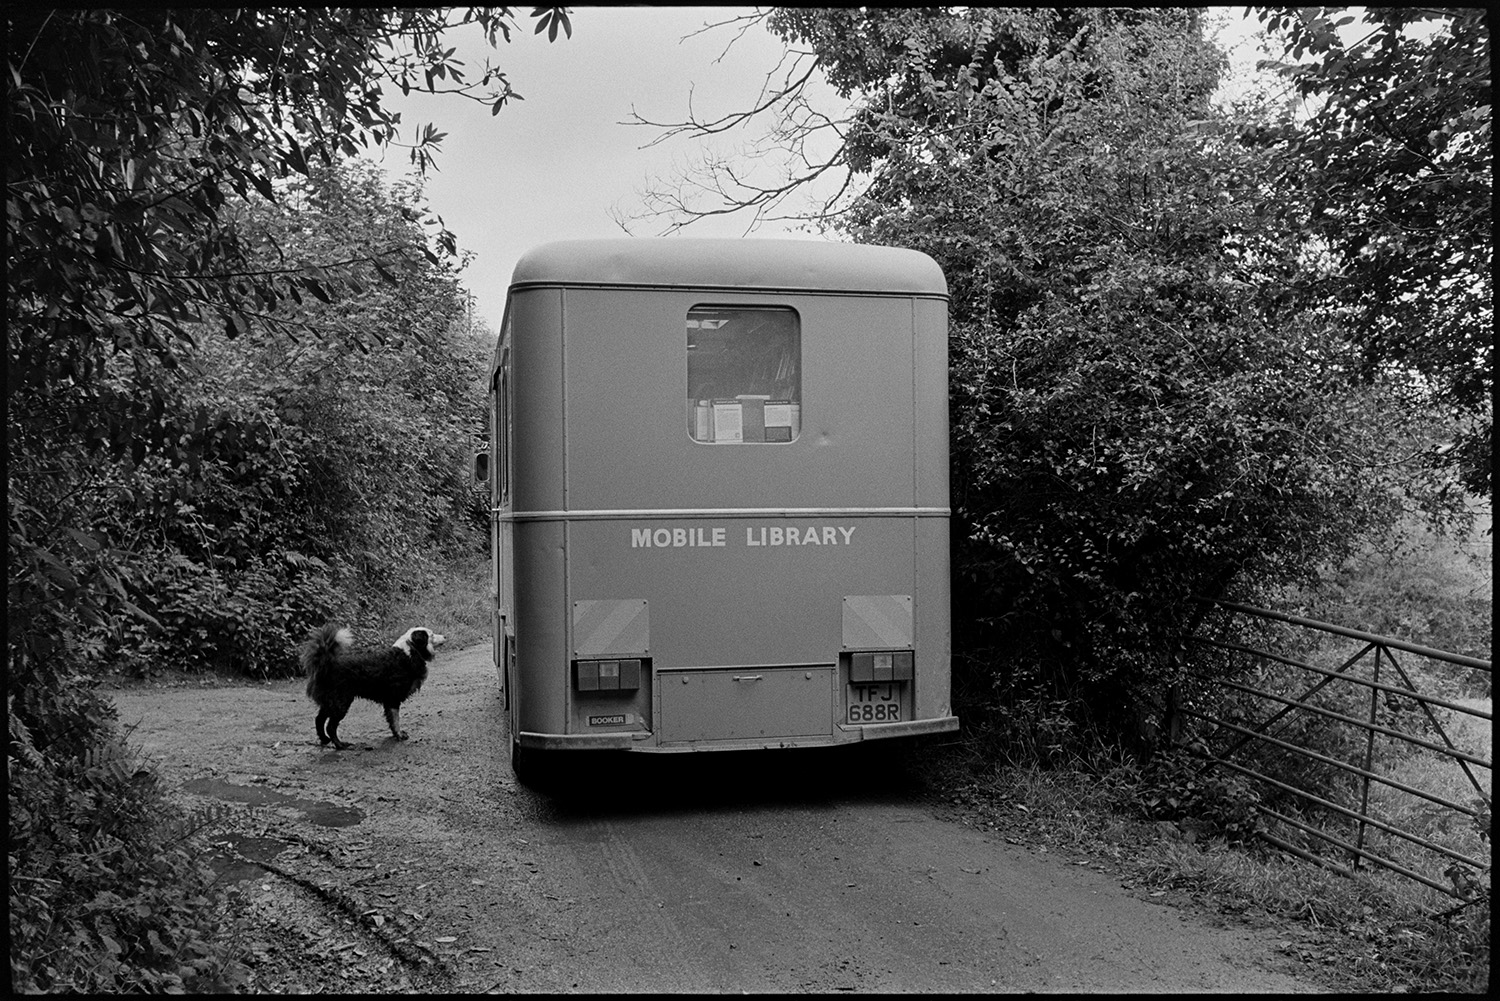 Library van parked in country lane, dog peeing on wheel. <br /> [A dog looking at a library van parked in a lane with trees, possibly near Holsworthy.]